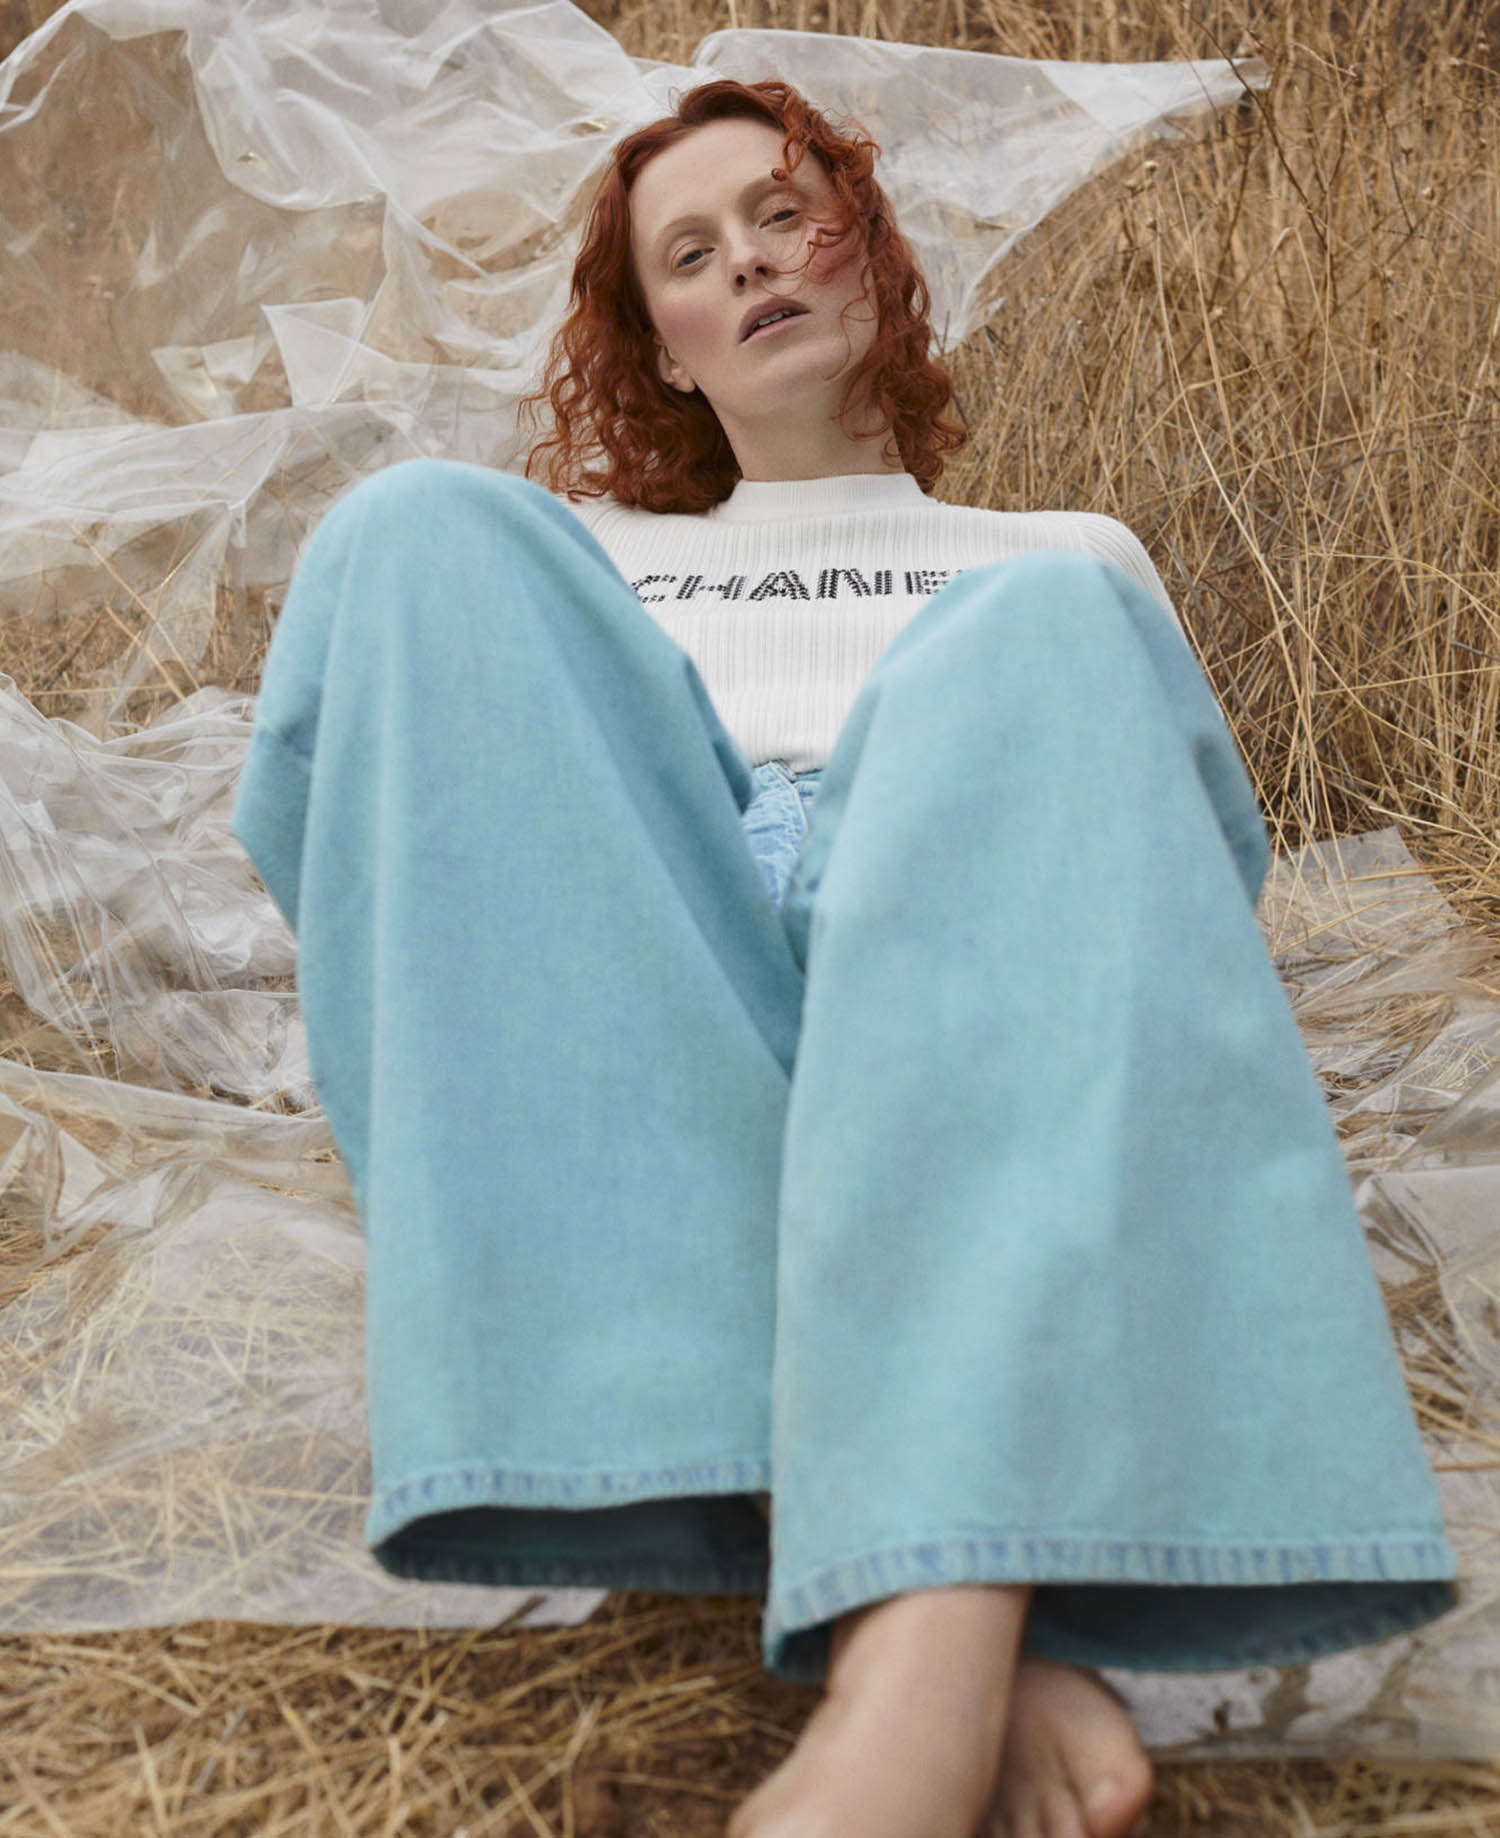 Karen Elson by Zoey Grossman for Elle US March 2021